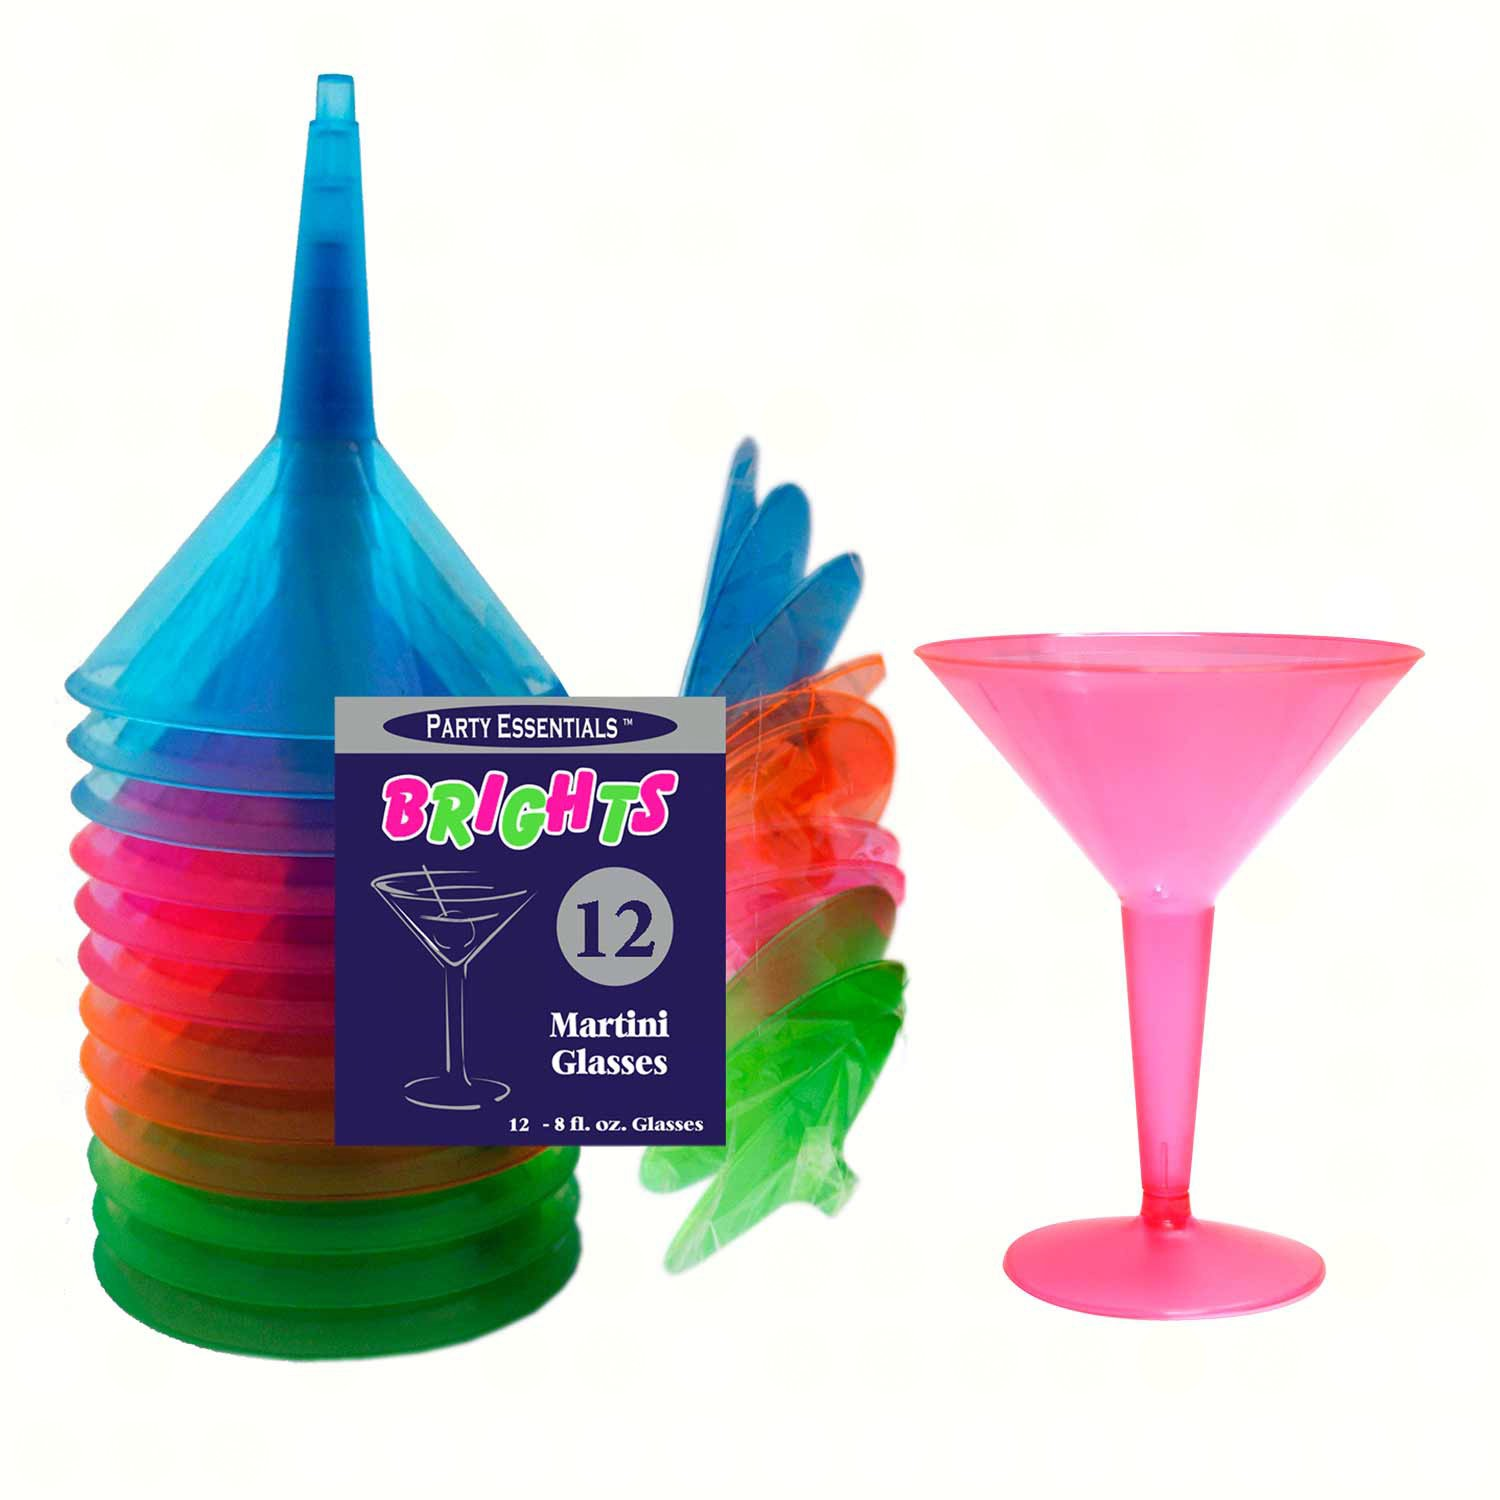 2 pc 8 oz Martini Glasses Assorted Neon 12 ct